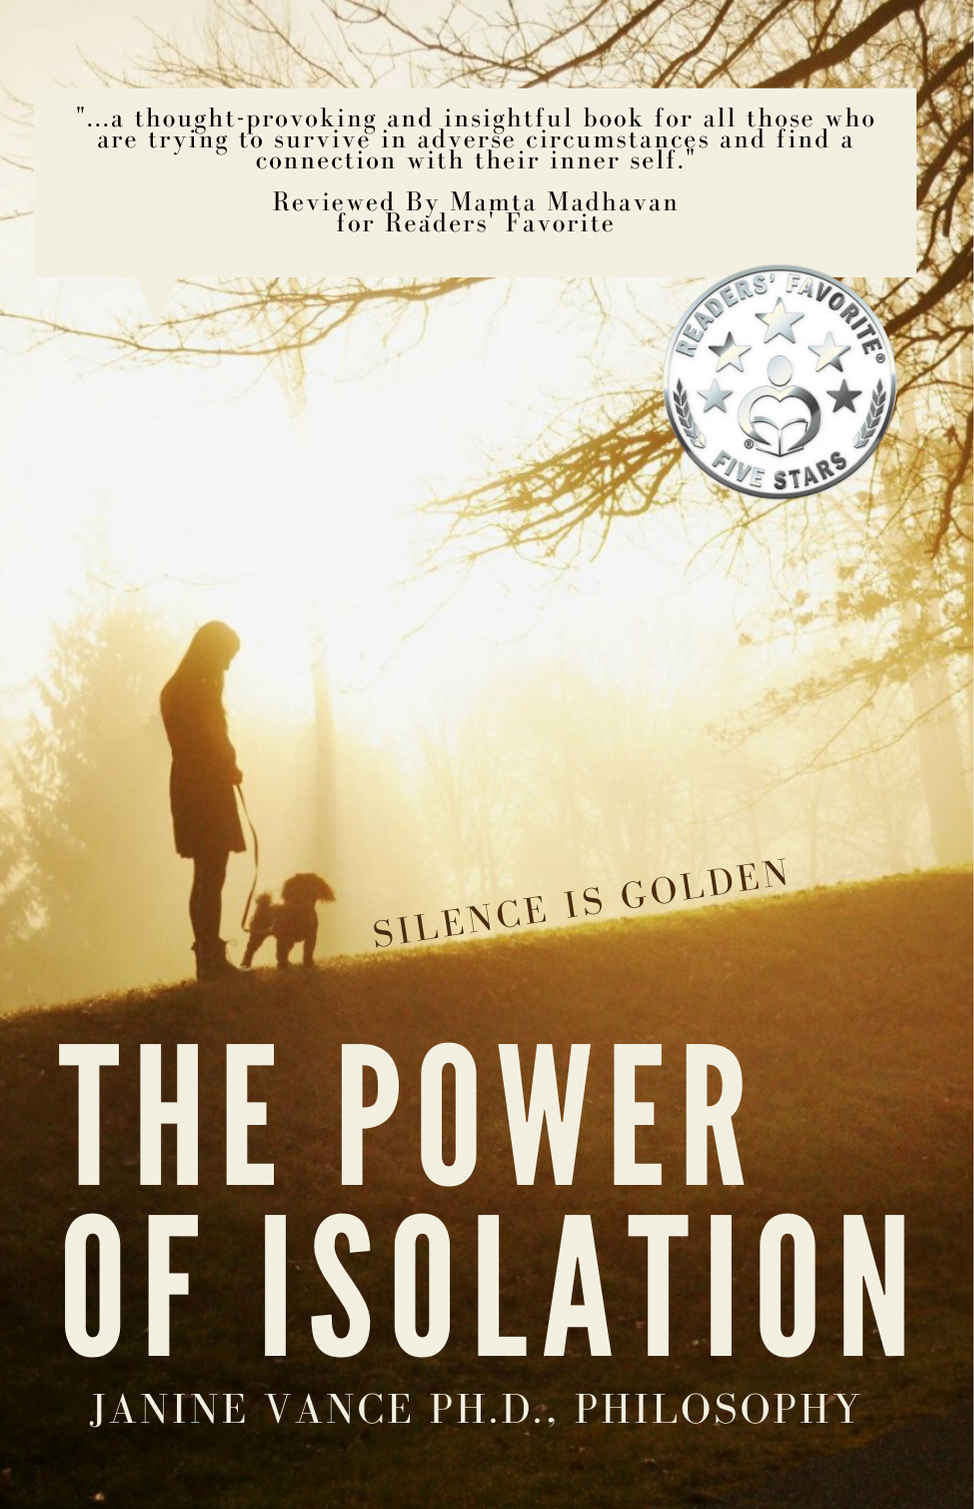 The Power of Isolation by Janine Vance